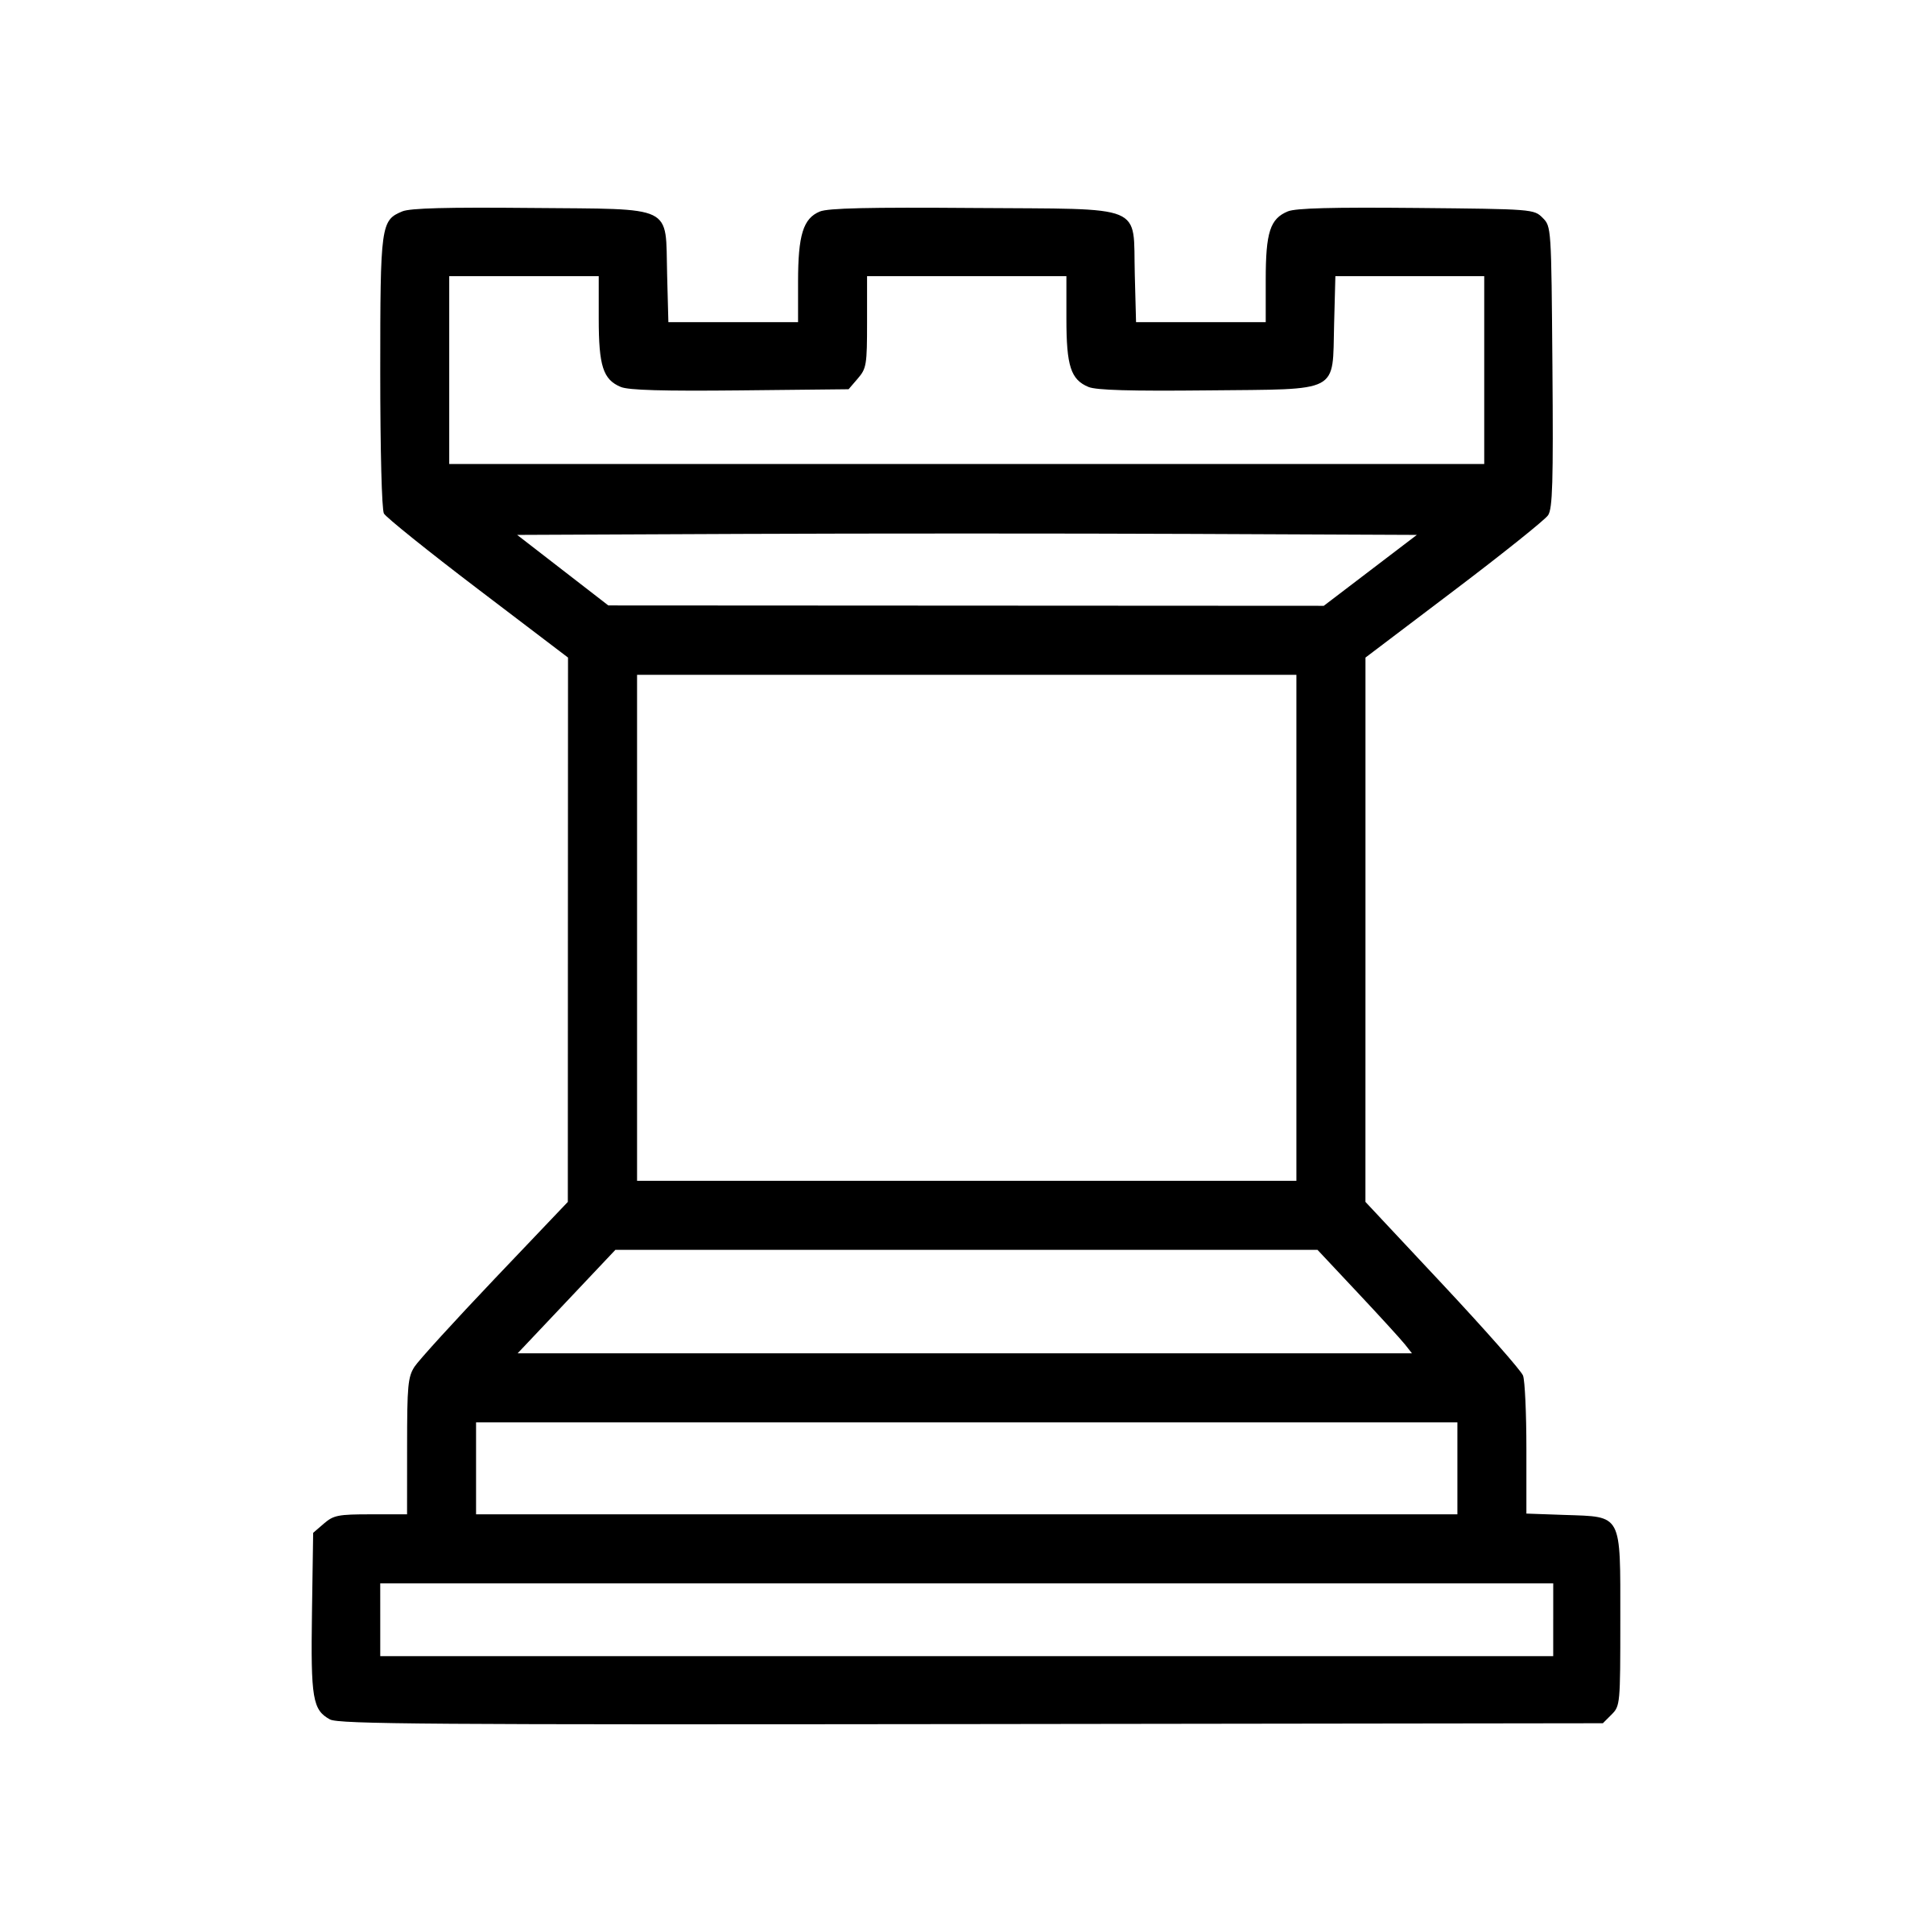 Chess tile - Rook 3 by portablejim